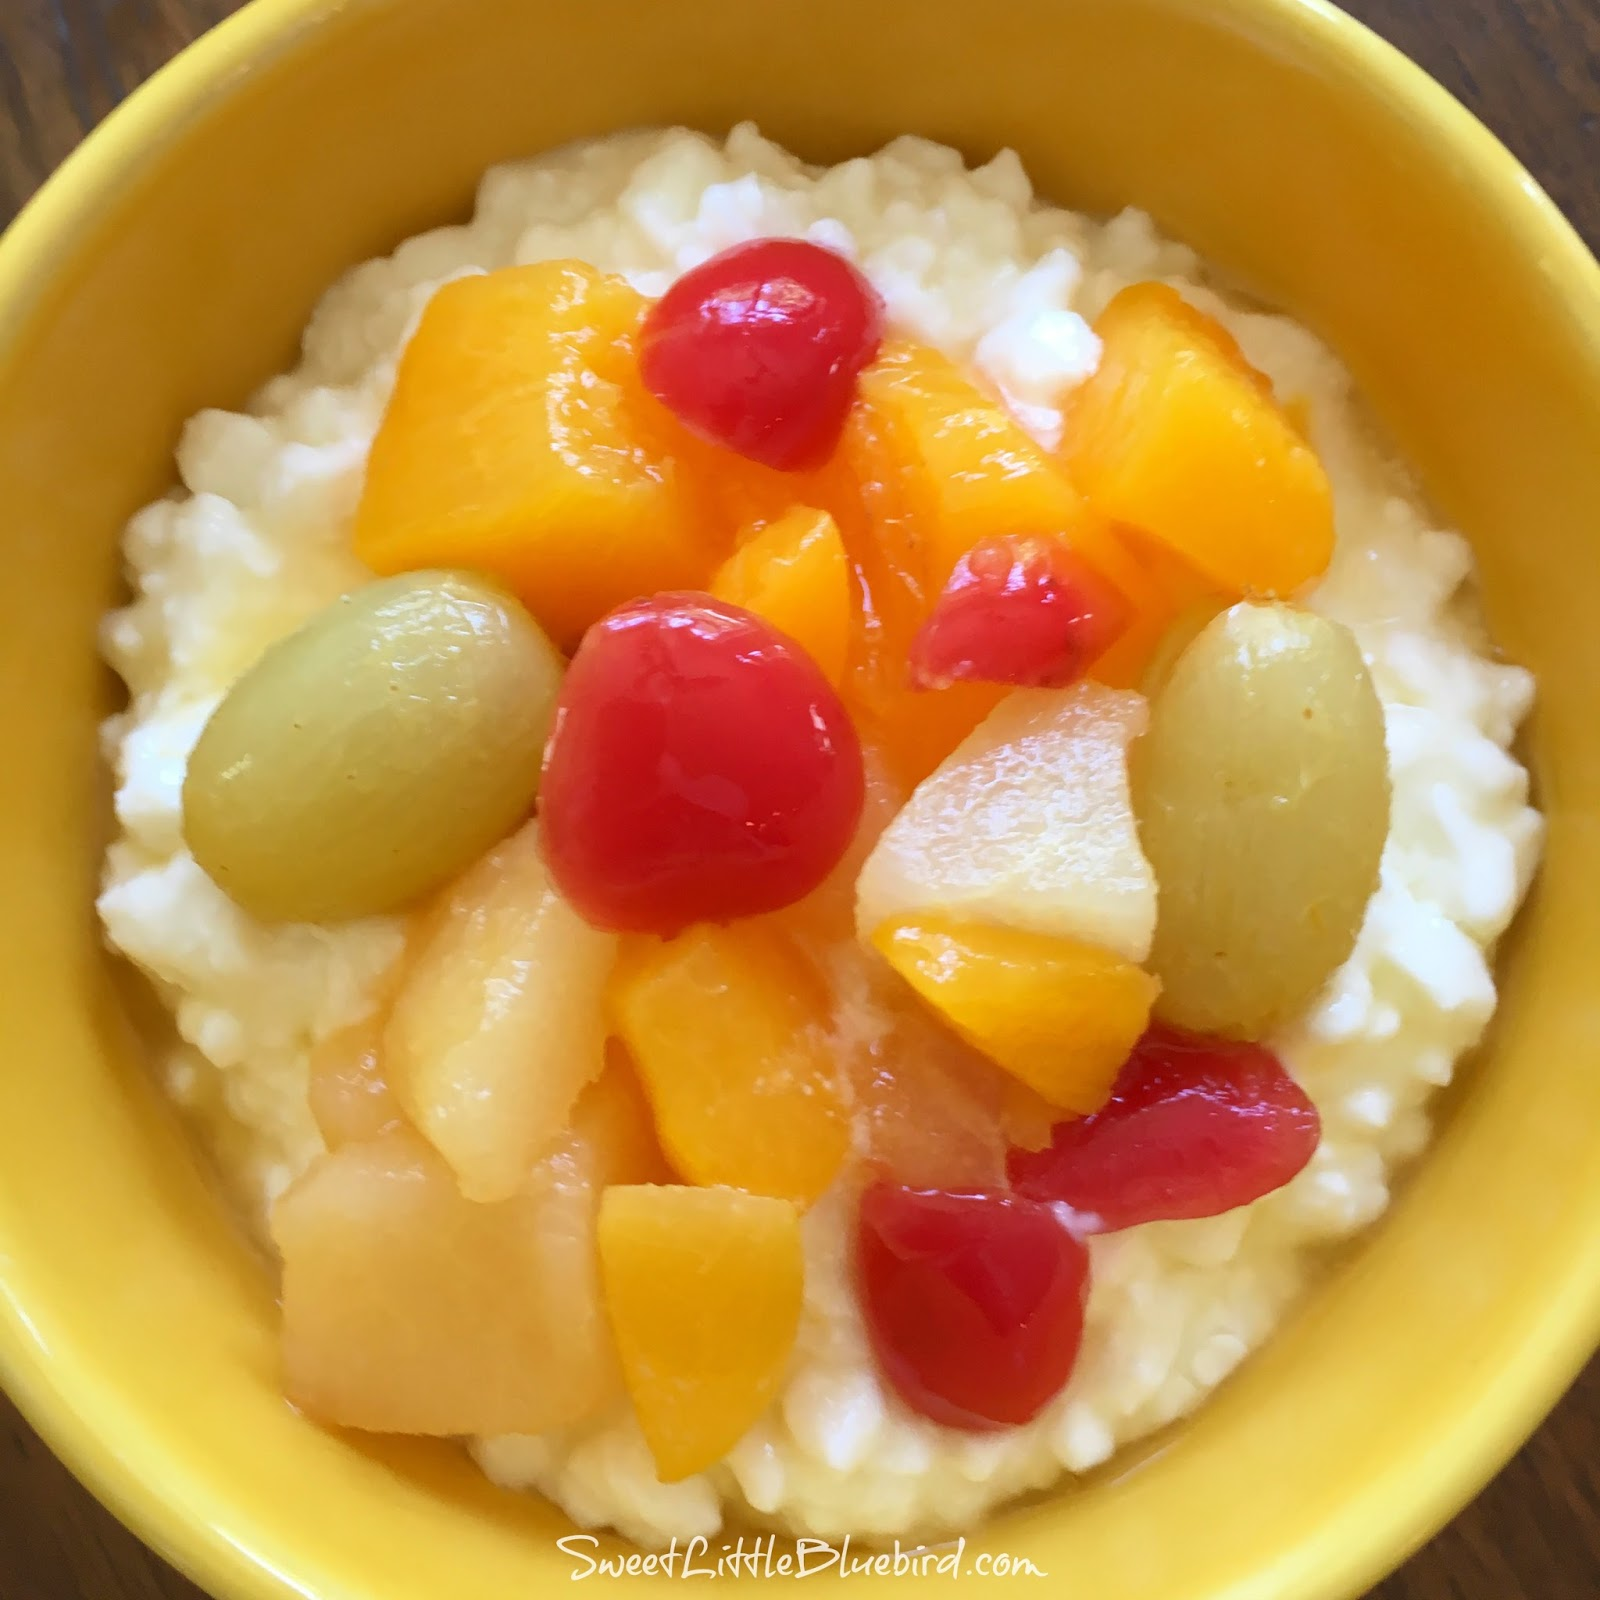 To Make Simply Top Cottage Cheese With Your Favorite Fruit